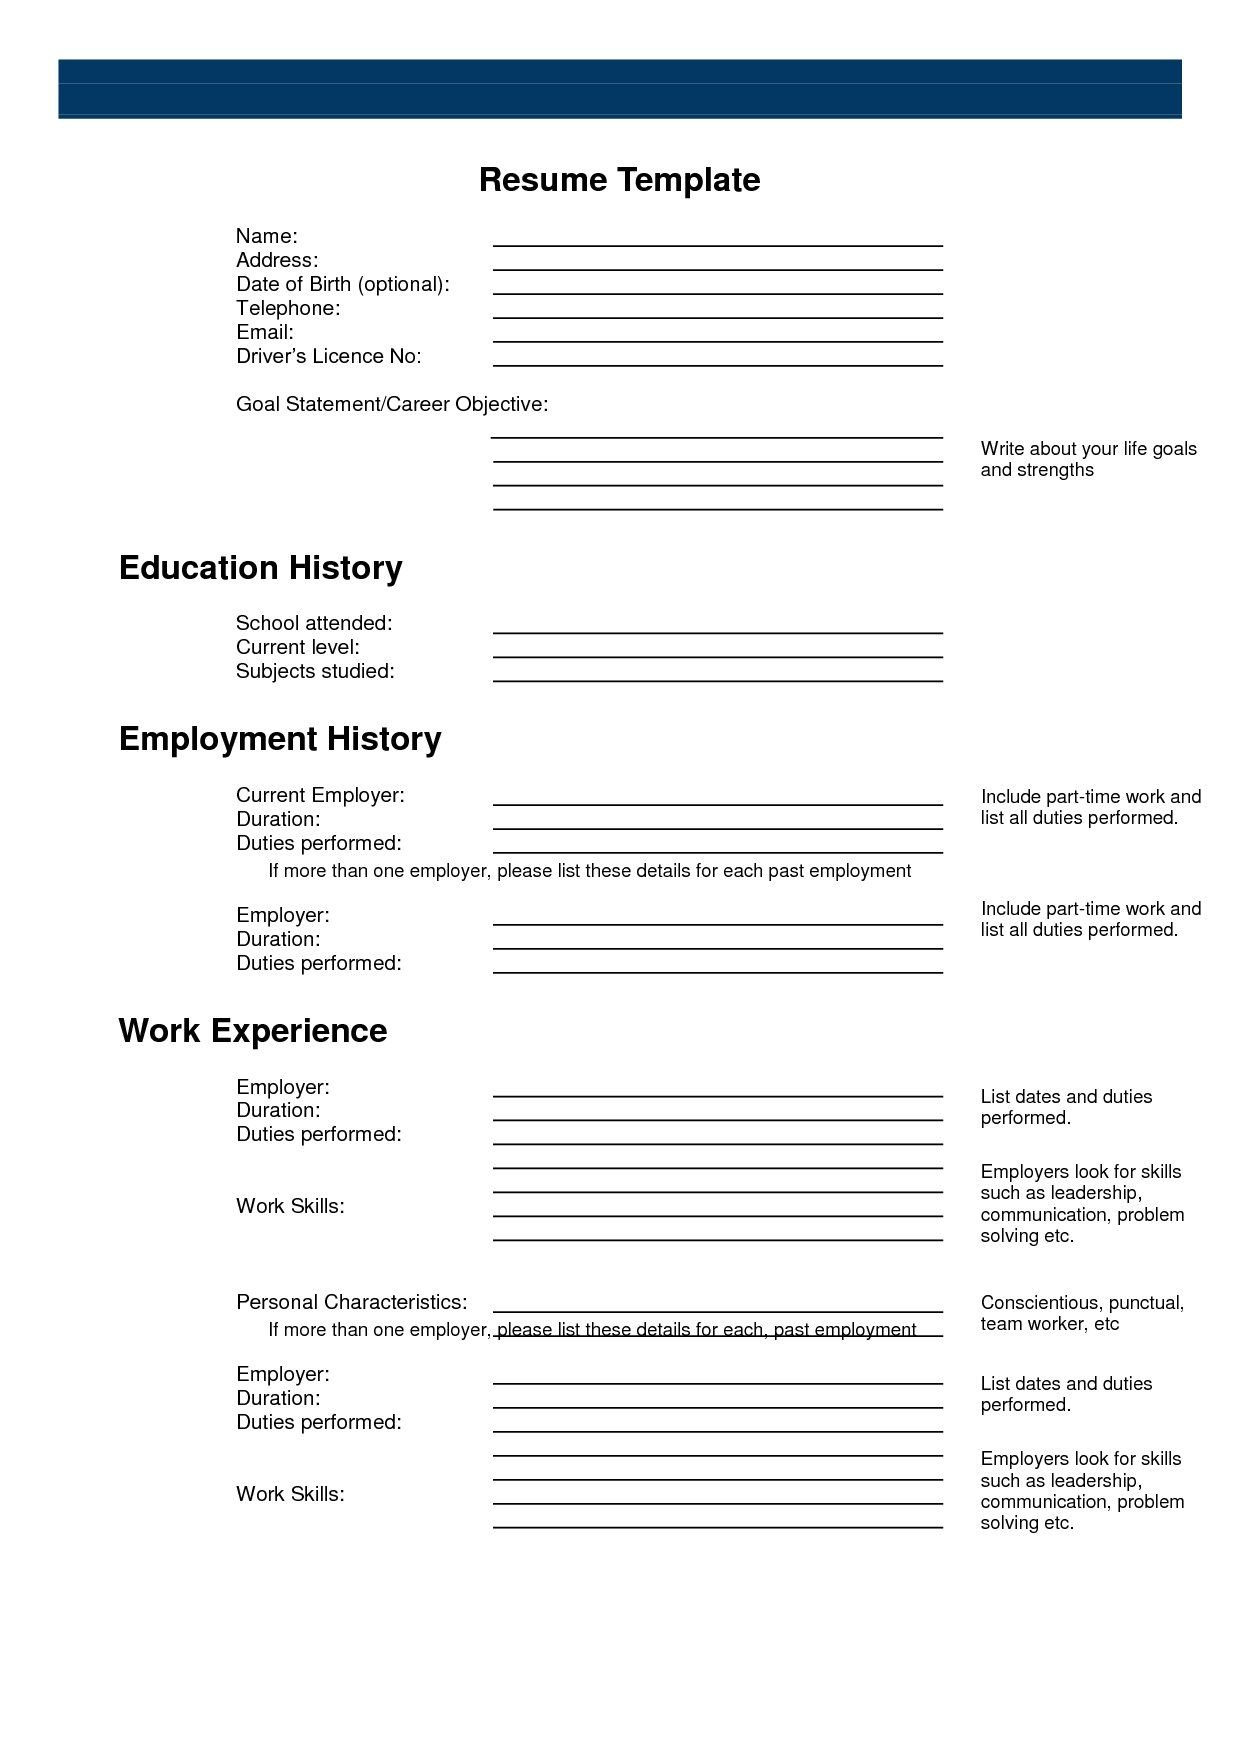 Resume Templates Printable ResumeTemplates